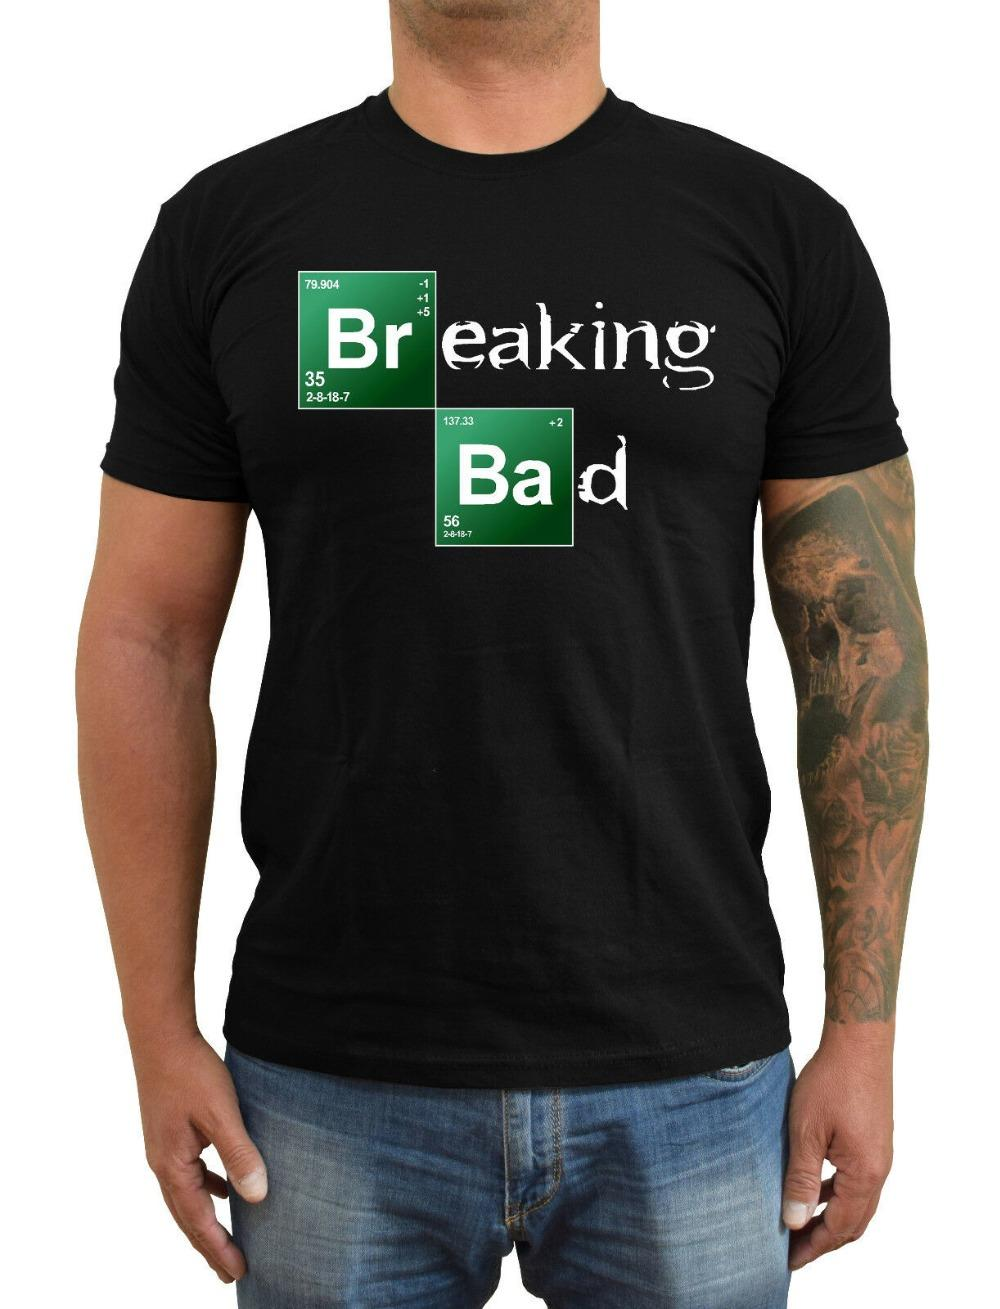 Breaking Bad elementi chimici T-shirt Ver. 1 uomo in cotone T-shirt classica 2019 O Collo Street Wear Hip Hop Top Film Tee Shirt